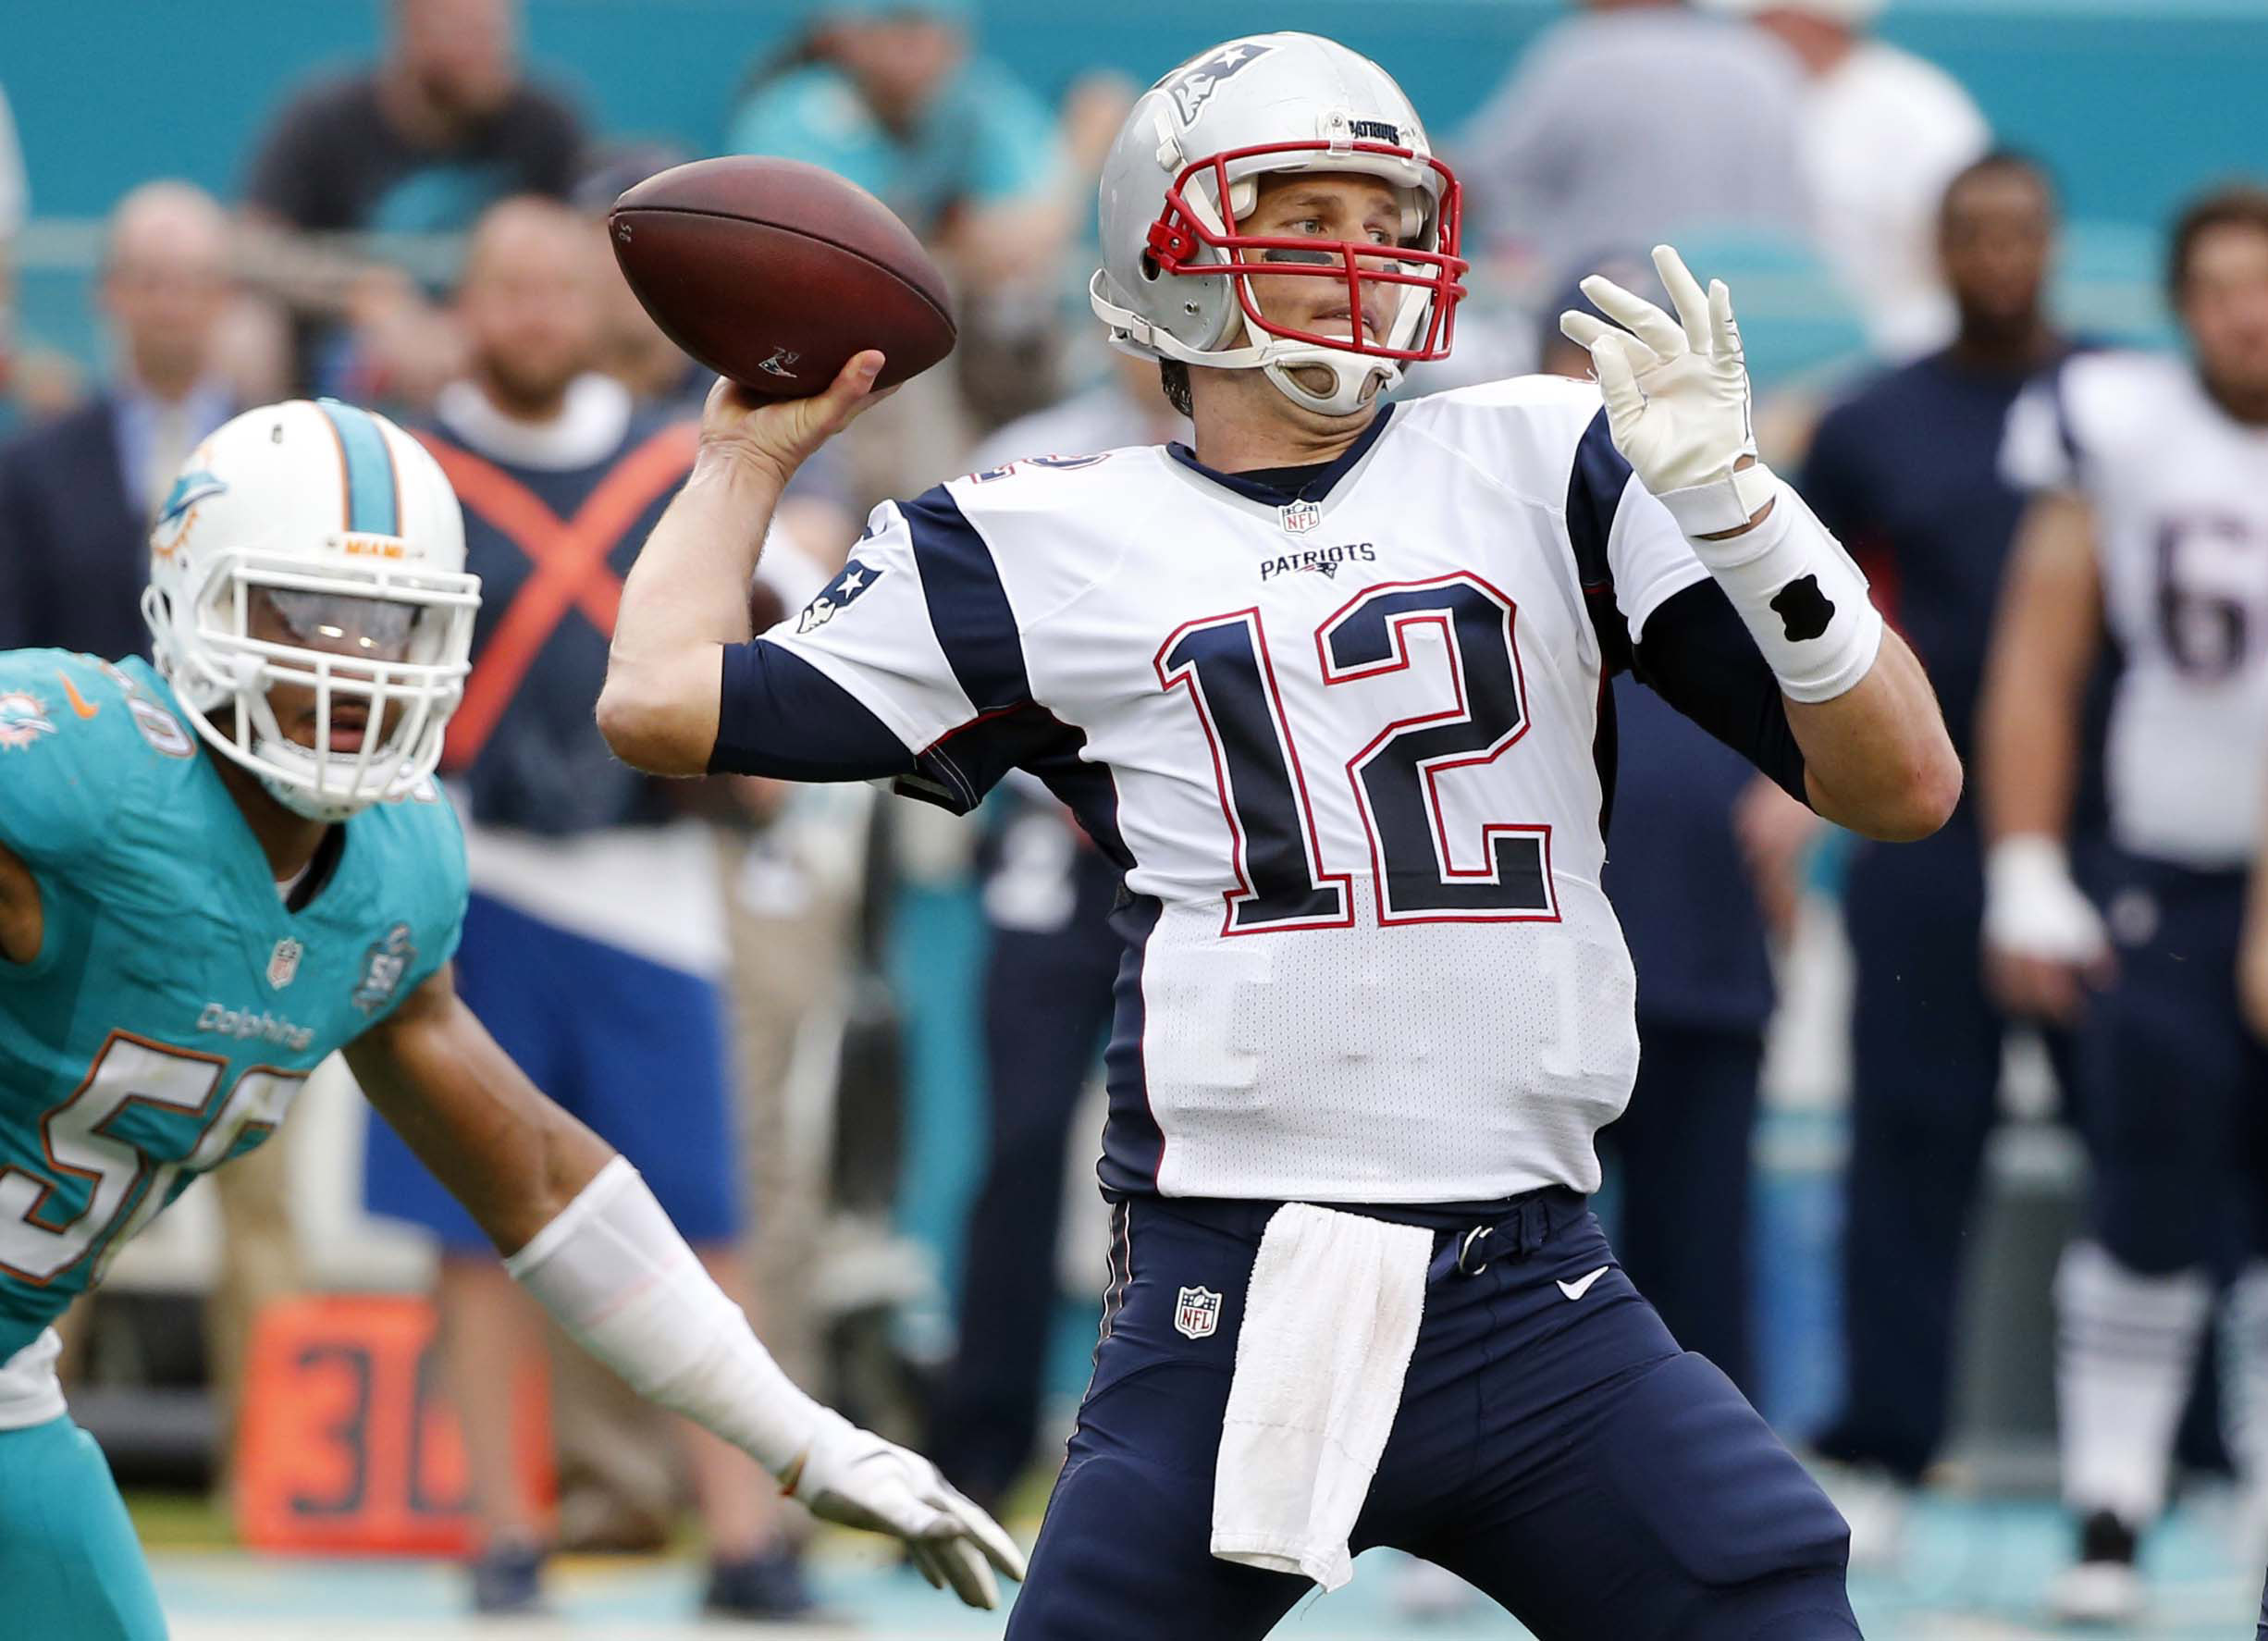 FILE - In this Sunday, Jan. 3, 2016 file photo, New England Patriots quarterback Tom Brady (12) aims to pass during the second half of an NFL football game against the Miami Dolphins in Miami Gardens, Fla. Even after a most unusual season, New England eas